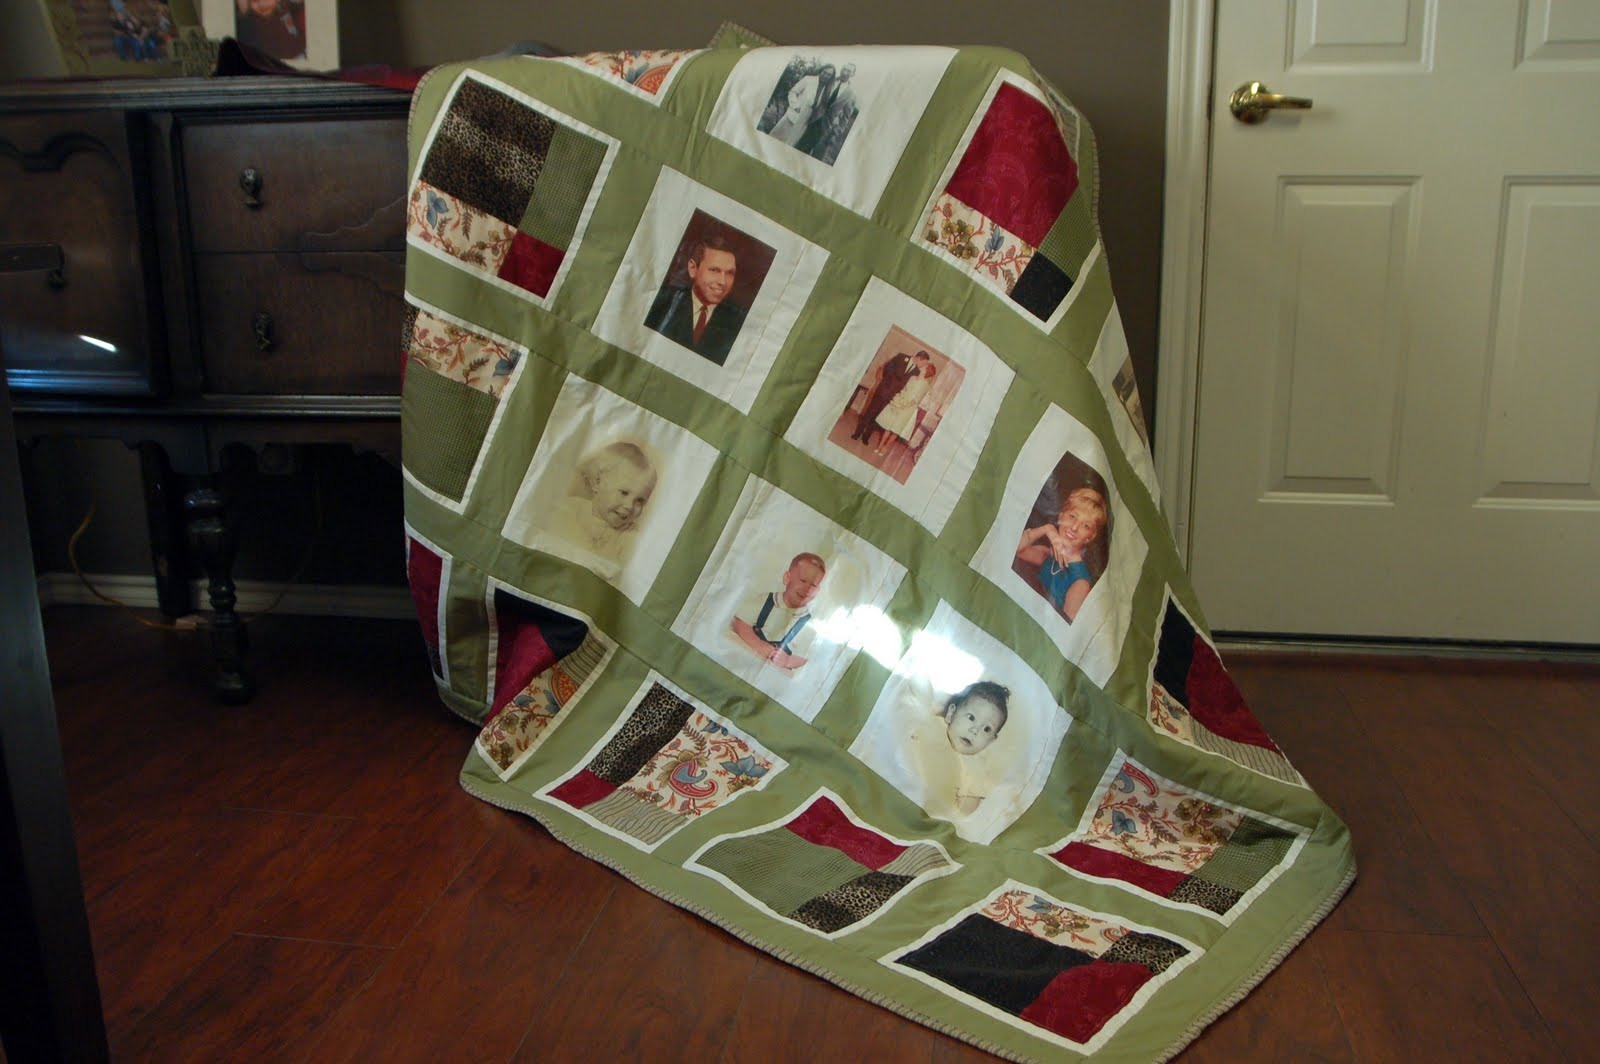 Photo day for the quilt was Thursday & it ended up insanely windy out ...